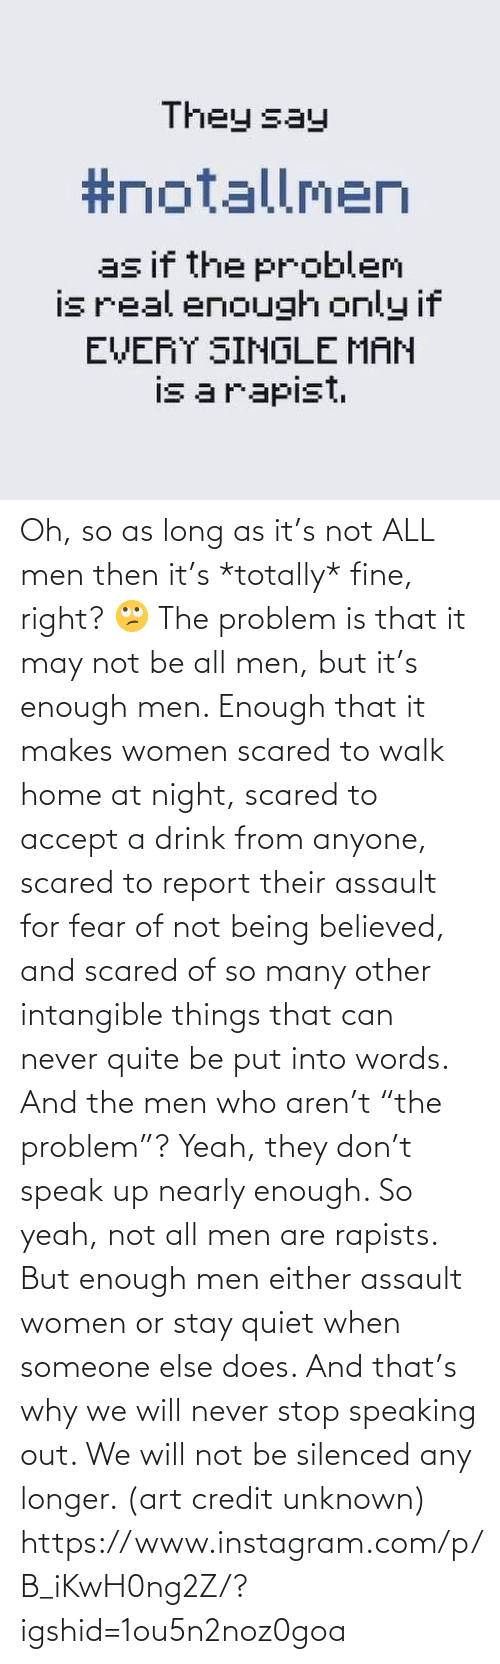 """Instagram, Target, and Yeah: Oh, so as long as it's not ALL men then it's *totally* fine, right? 🙄 The problem is that it may not be all men, but it's enough men. Enough that it makes women scared to walk home at night, scared to accept a drink from anyone, scared to report their assault for fear of not being believed, and scared of so many other intangible things that can never quite be put into words. And the men who aren't """"the problem""""? Yeah, they don't speak up nearly enough. So yeah, not all men are rapists. But enough men either assault women or stay quiet when someone else does. And that's why we will never stop speaking out. We will not be silenced any longer. (art credit unknown)  https://www.instagram.com/p/B_iKwH0ng2Z/?igshid=1ou5n2noz0goa"""